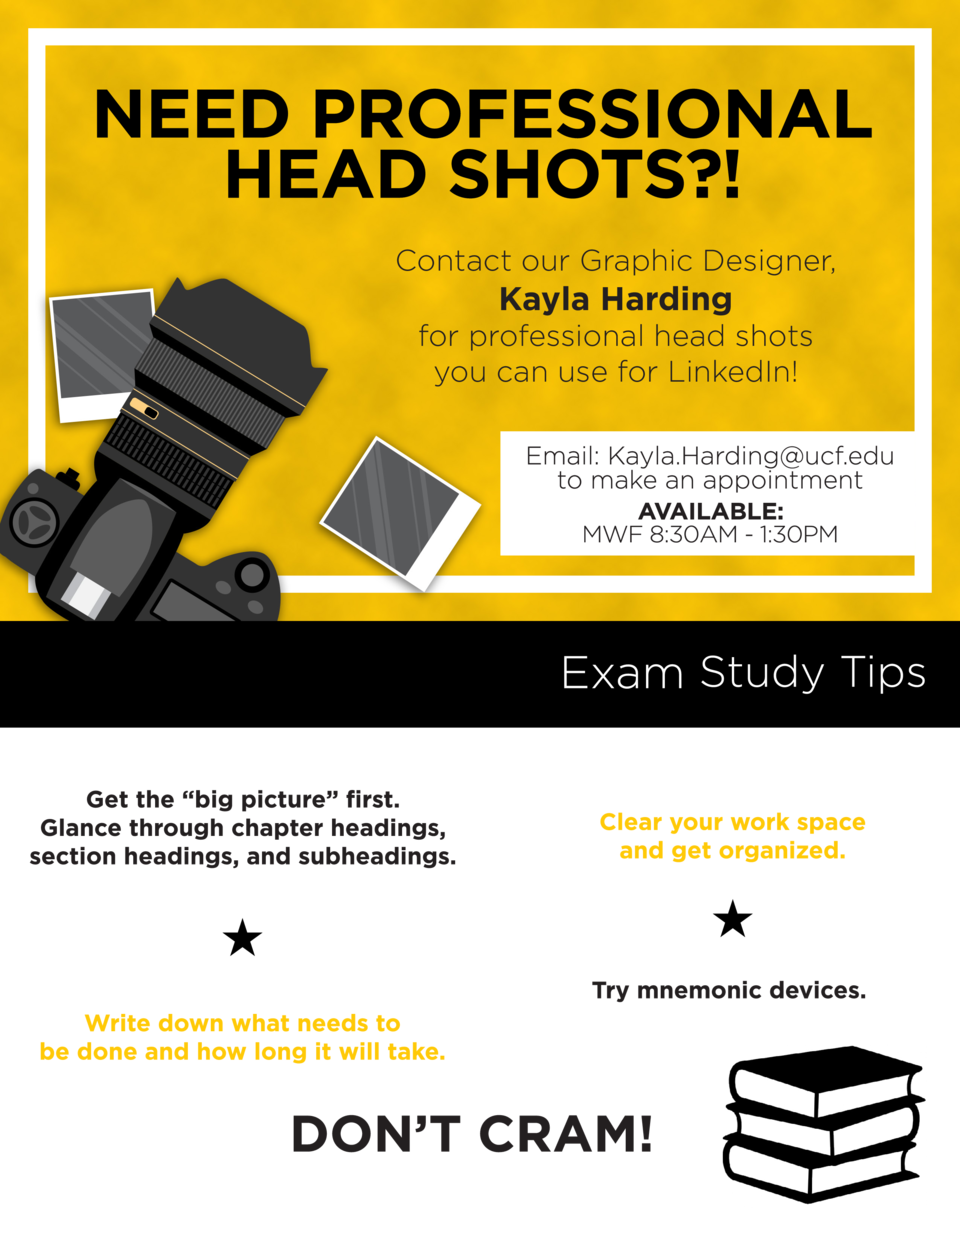 Contact our Graphic Designer,  Kayla Harding for professional head shots you can use for LinkedIn